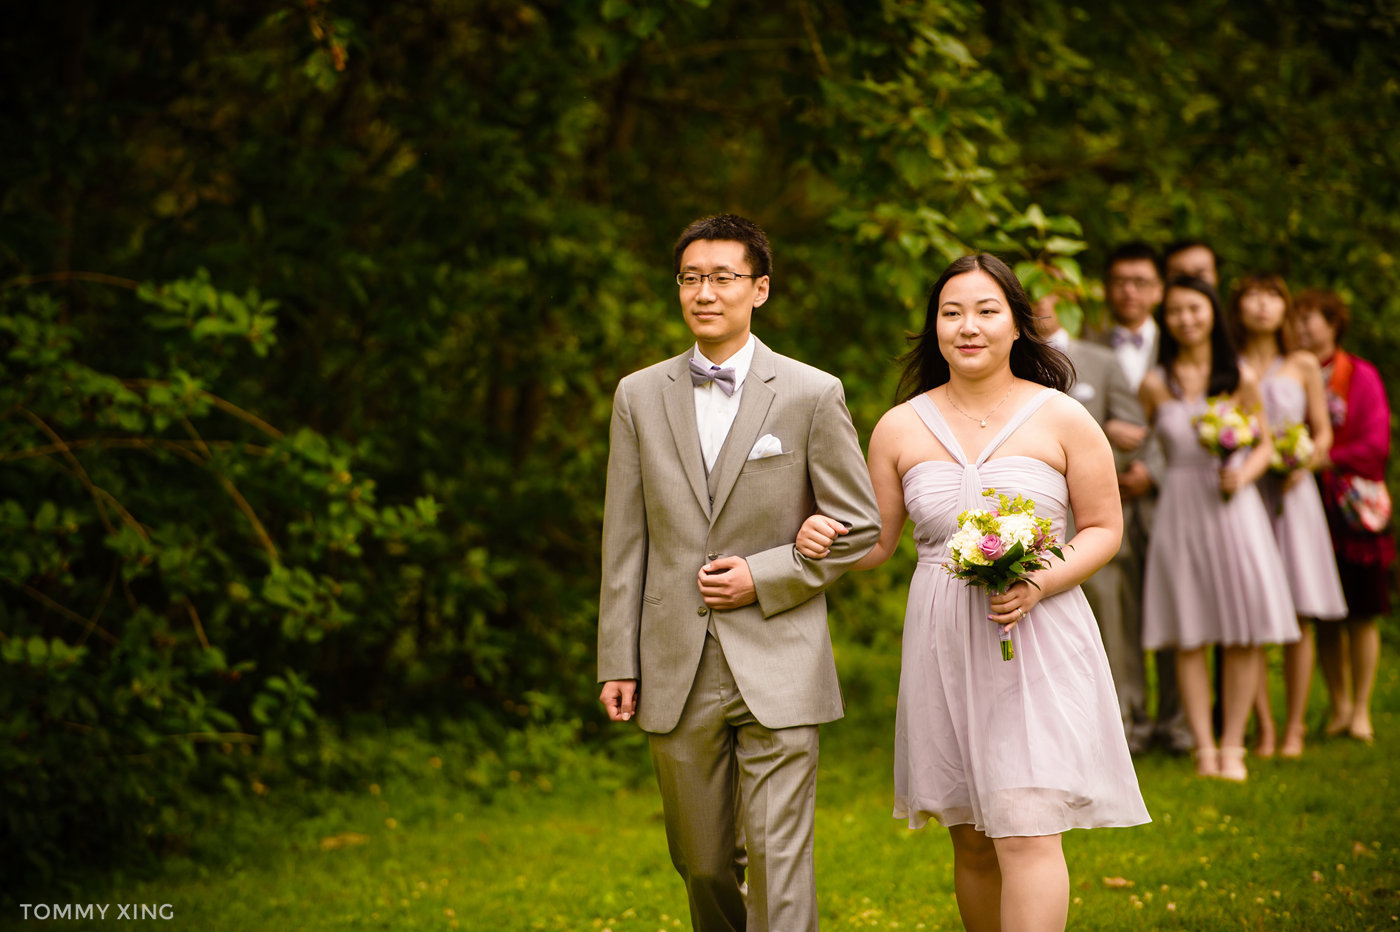 Seattle Wedding and pre wedding Los Angeles Tommy Xing Photography 西雅图洛杉矶旧金山婚礼婚纱照摄影师 062.jpg